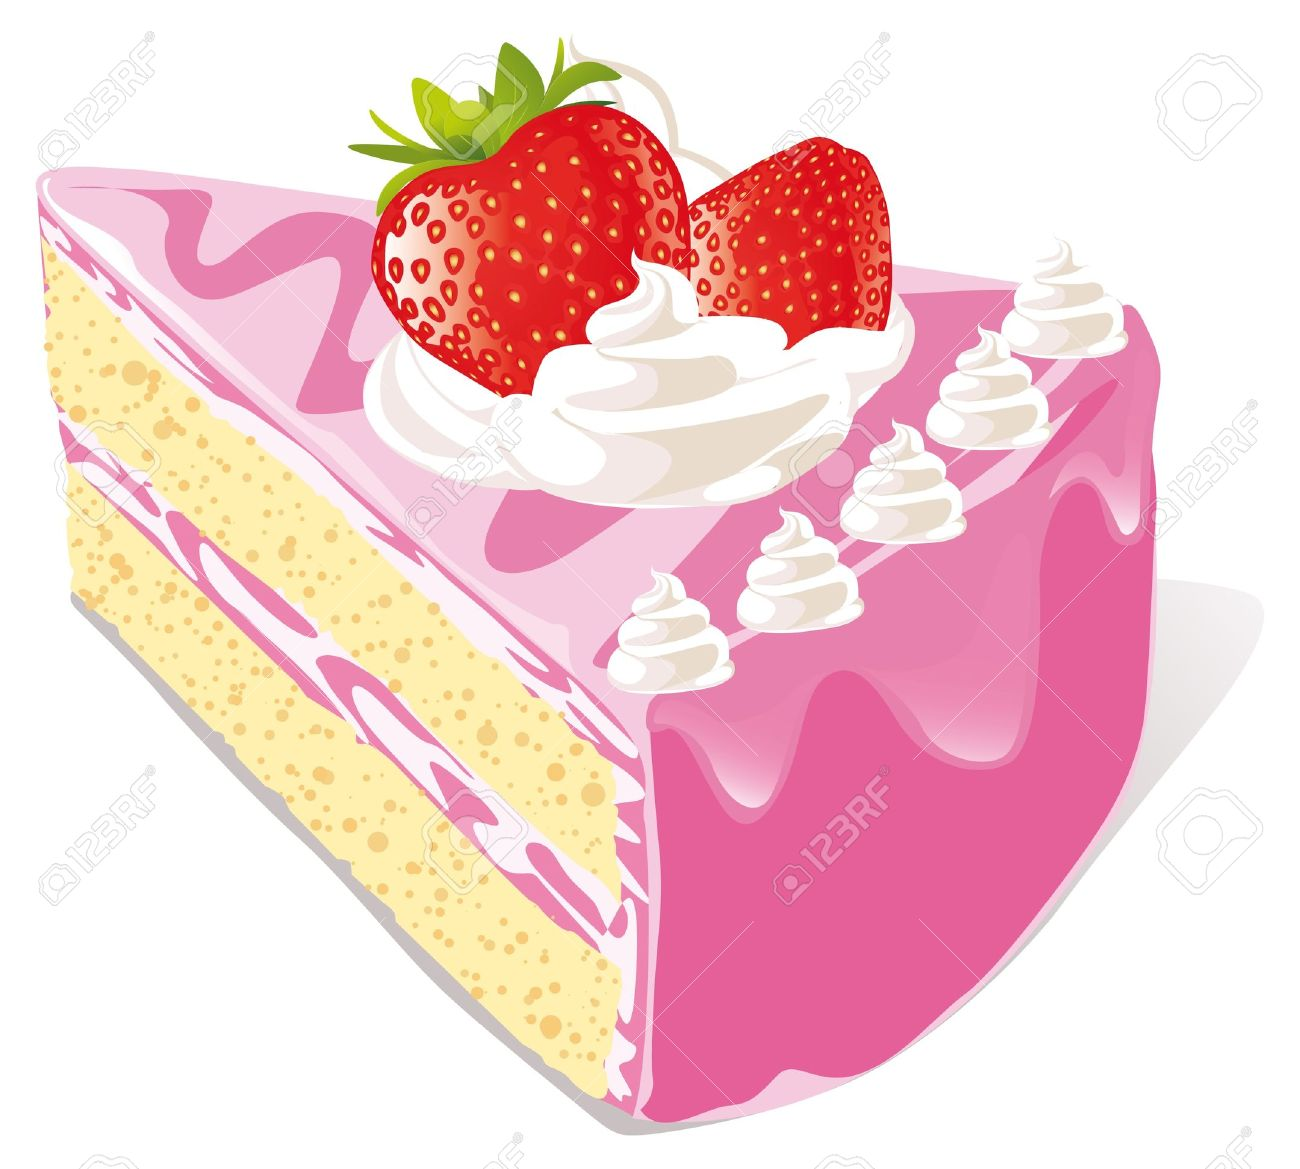 piece of cliparts. Cake slice clipart